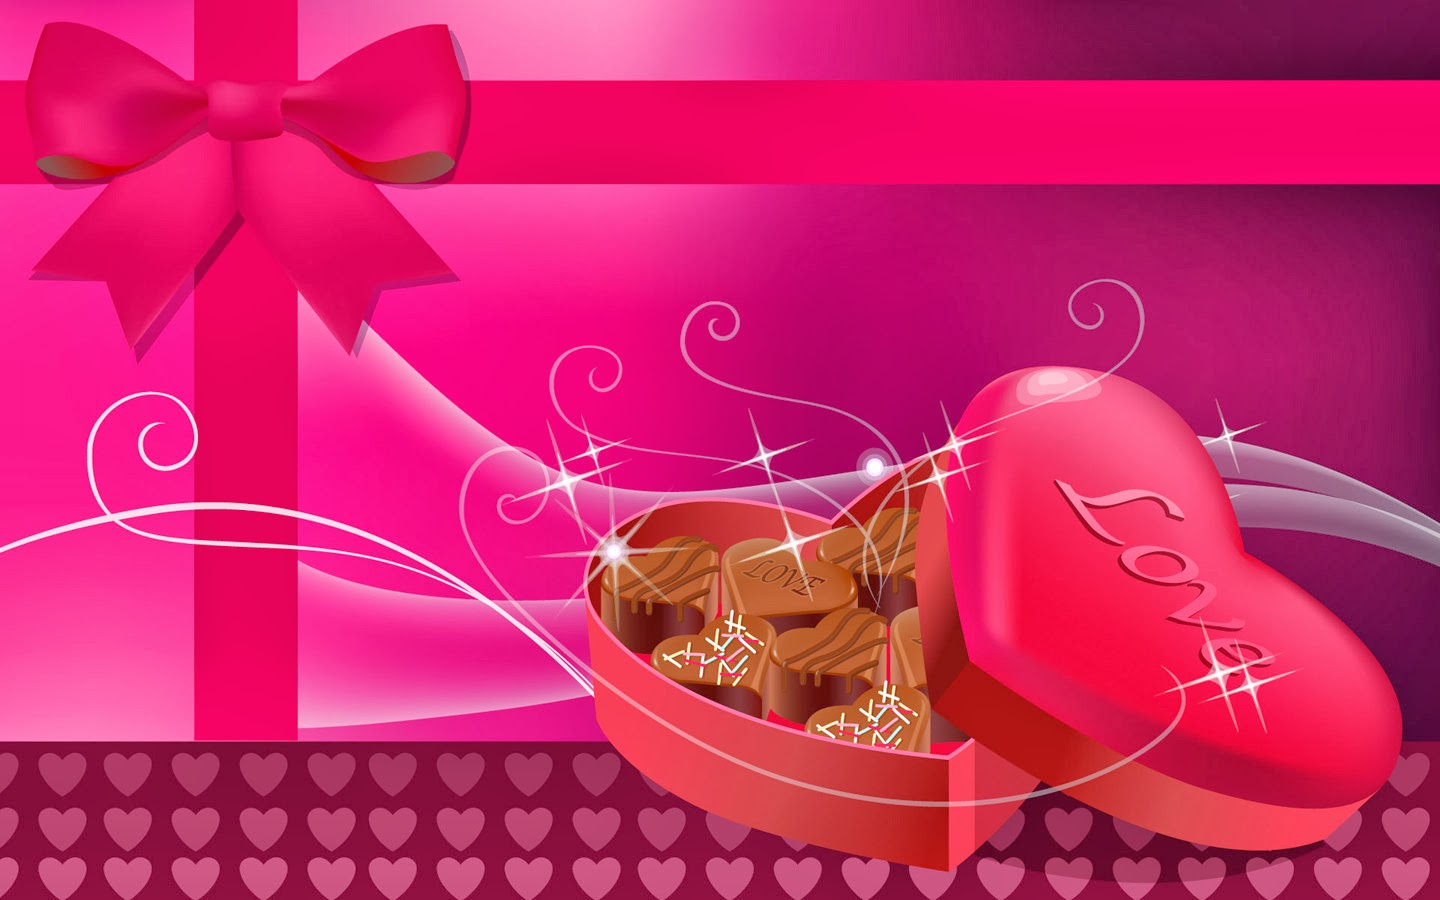 valentines-day-card-editable-Template-HD-image.jpg